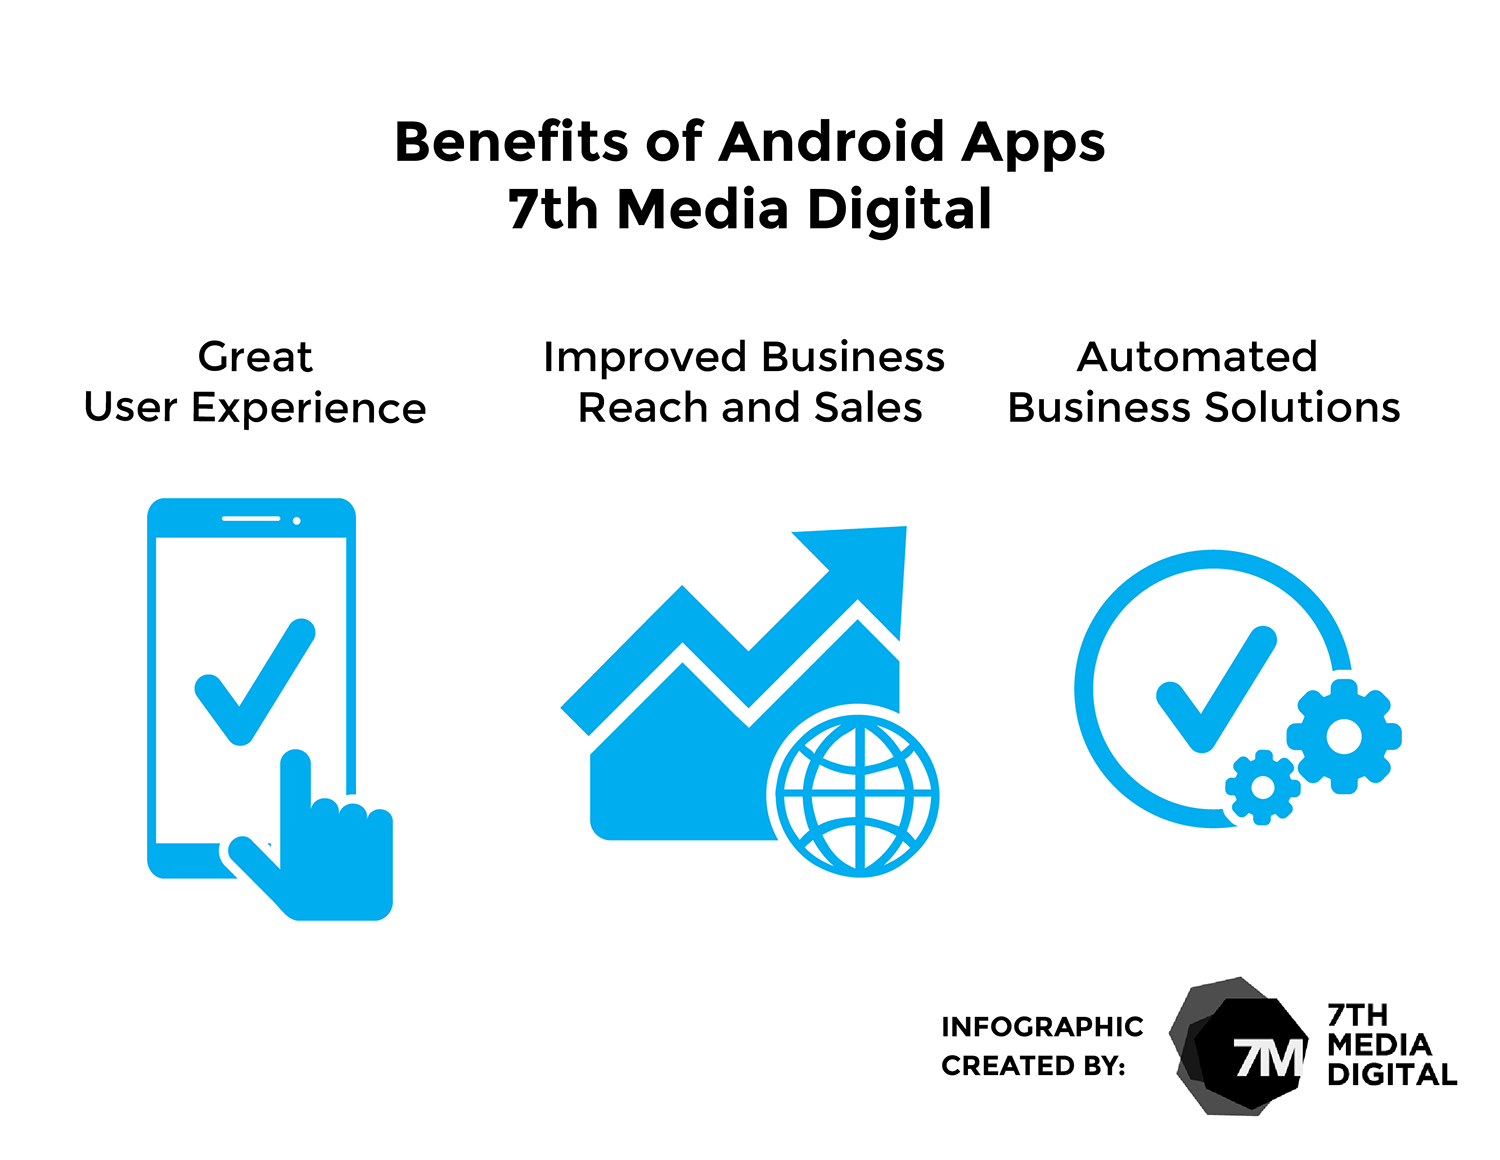 Benefits of Android Apps 7th Media Digital Infographic